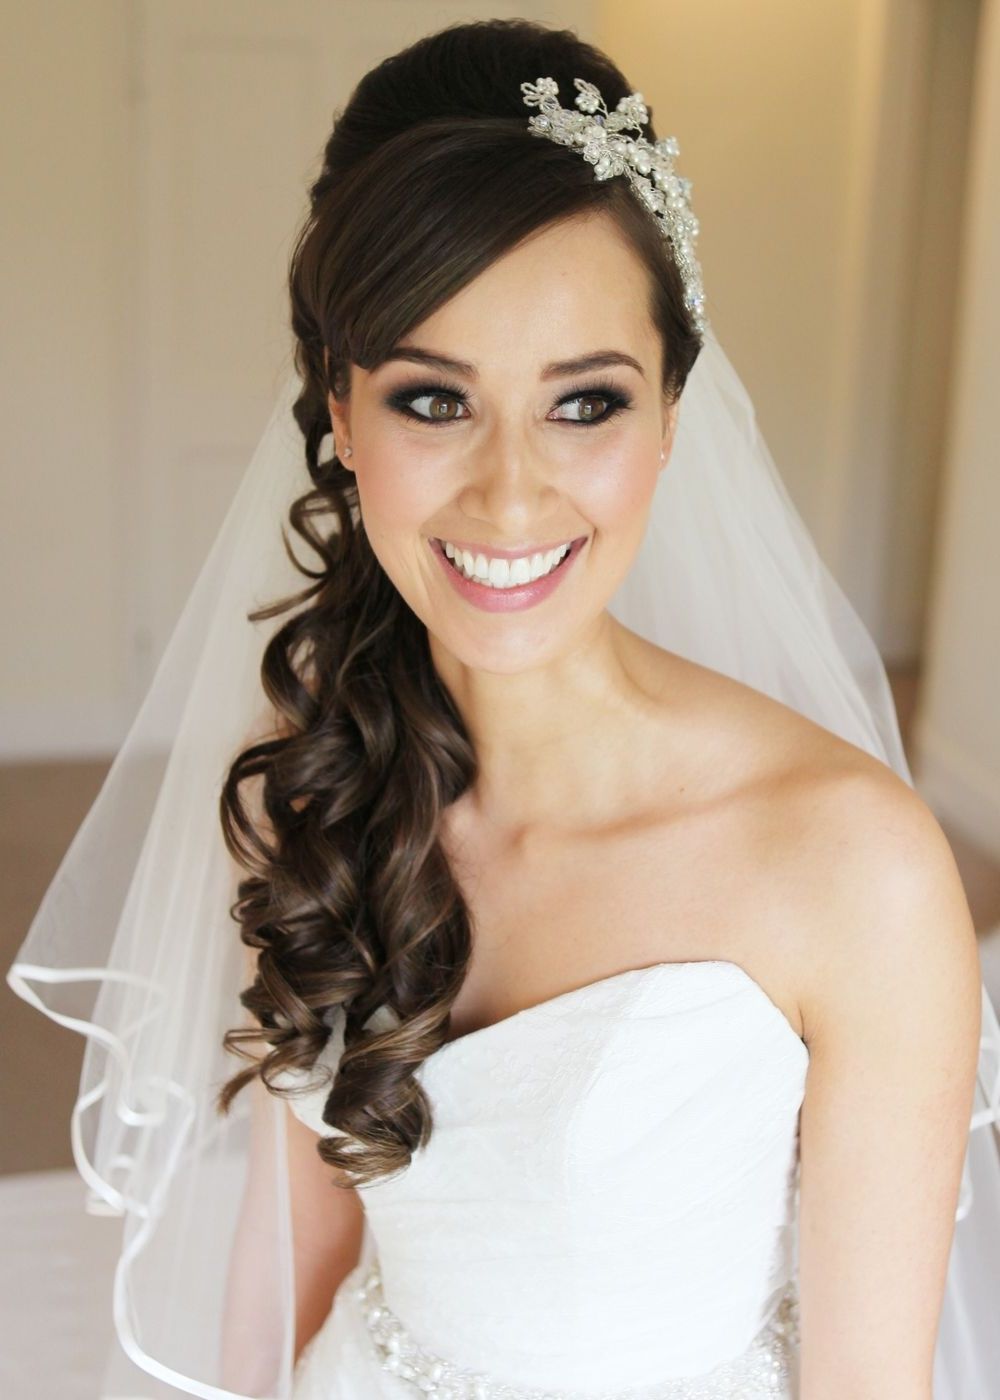 Favorite Wedding Hairstyles For Long Hair Without Veil With Regard To 15 Fabulous Half Up Half Down Wedding Hairstyles (View 8 of 15)